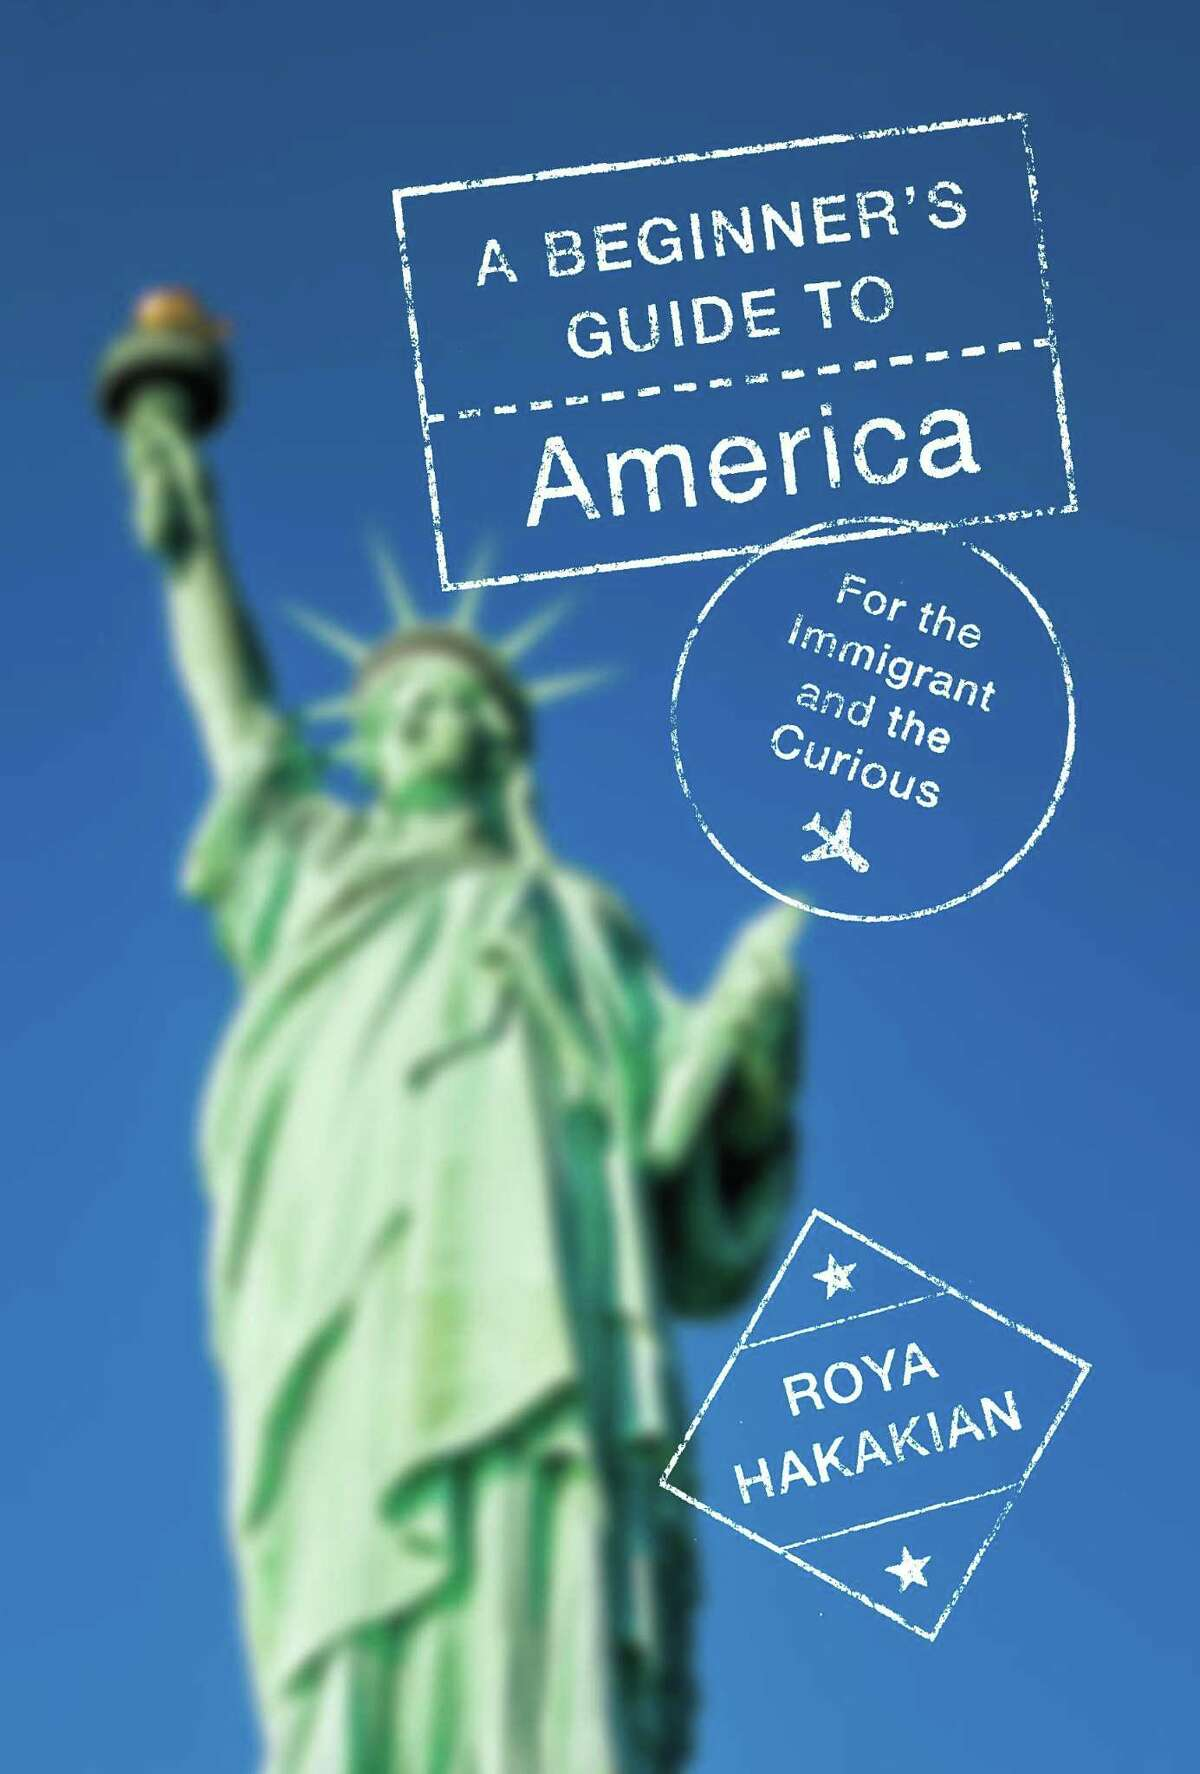 The cover of Roya Hakakian's book, coming in March.